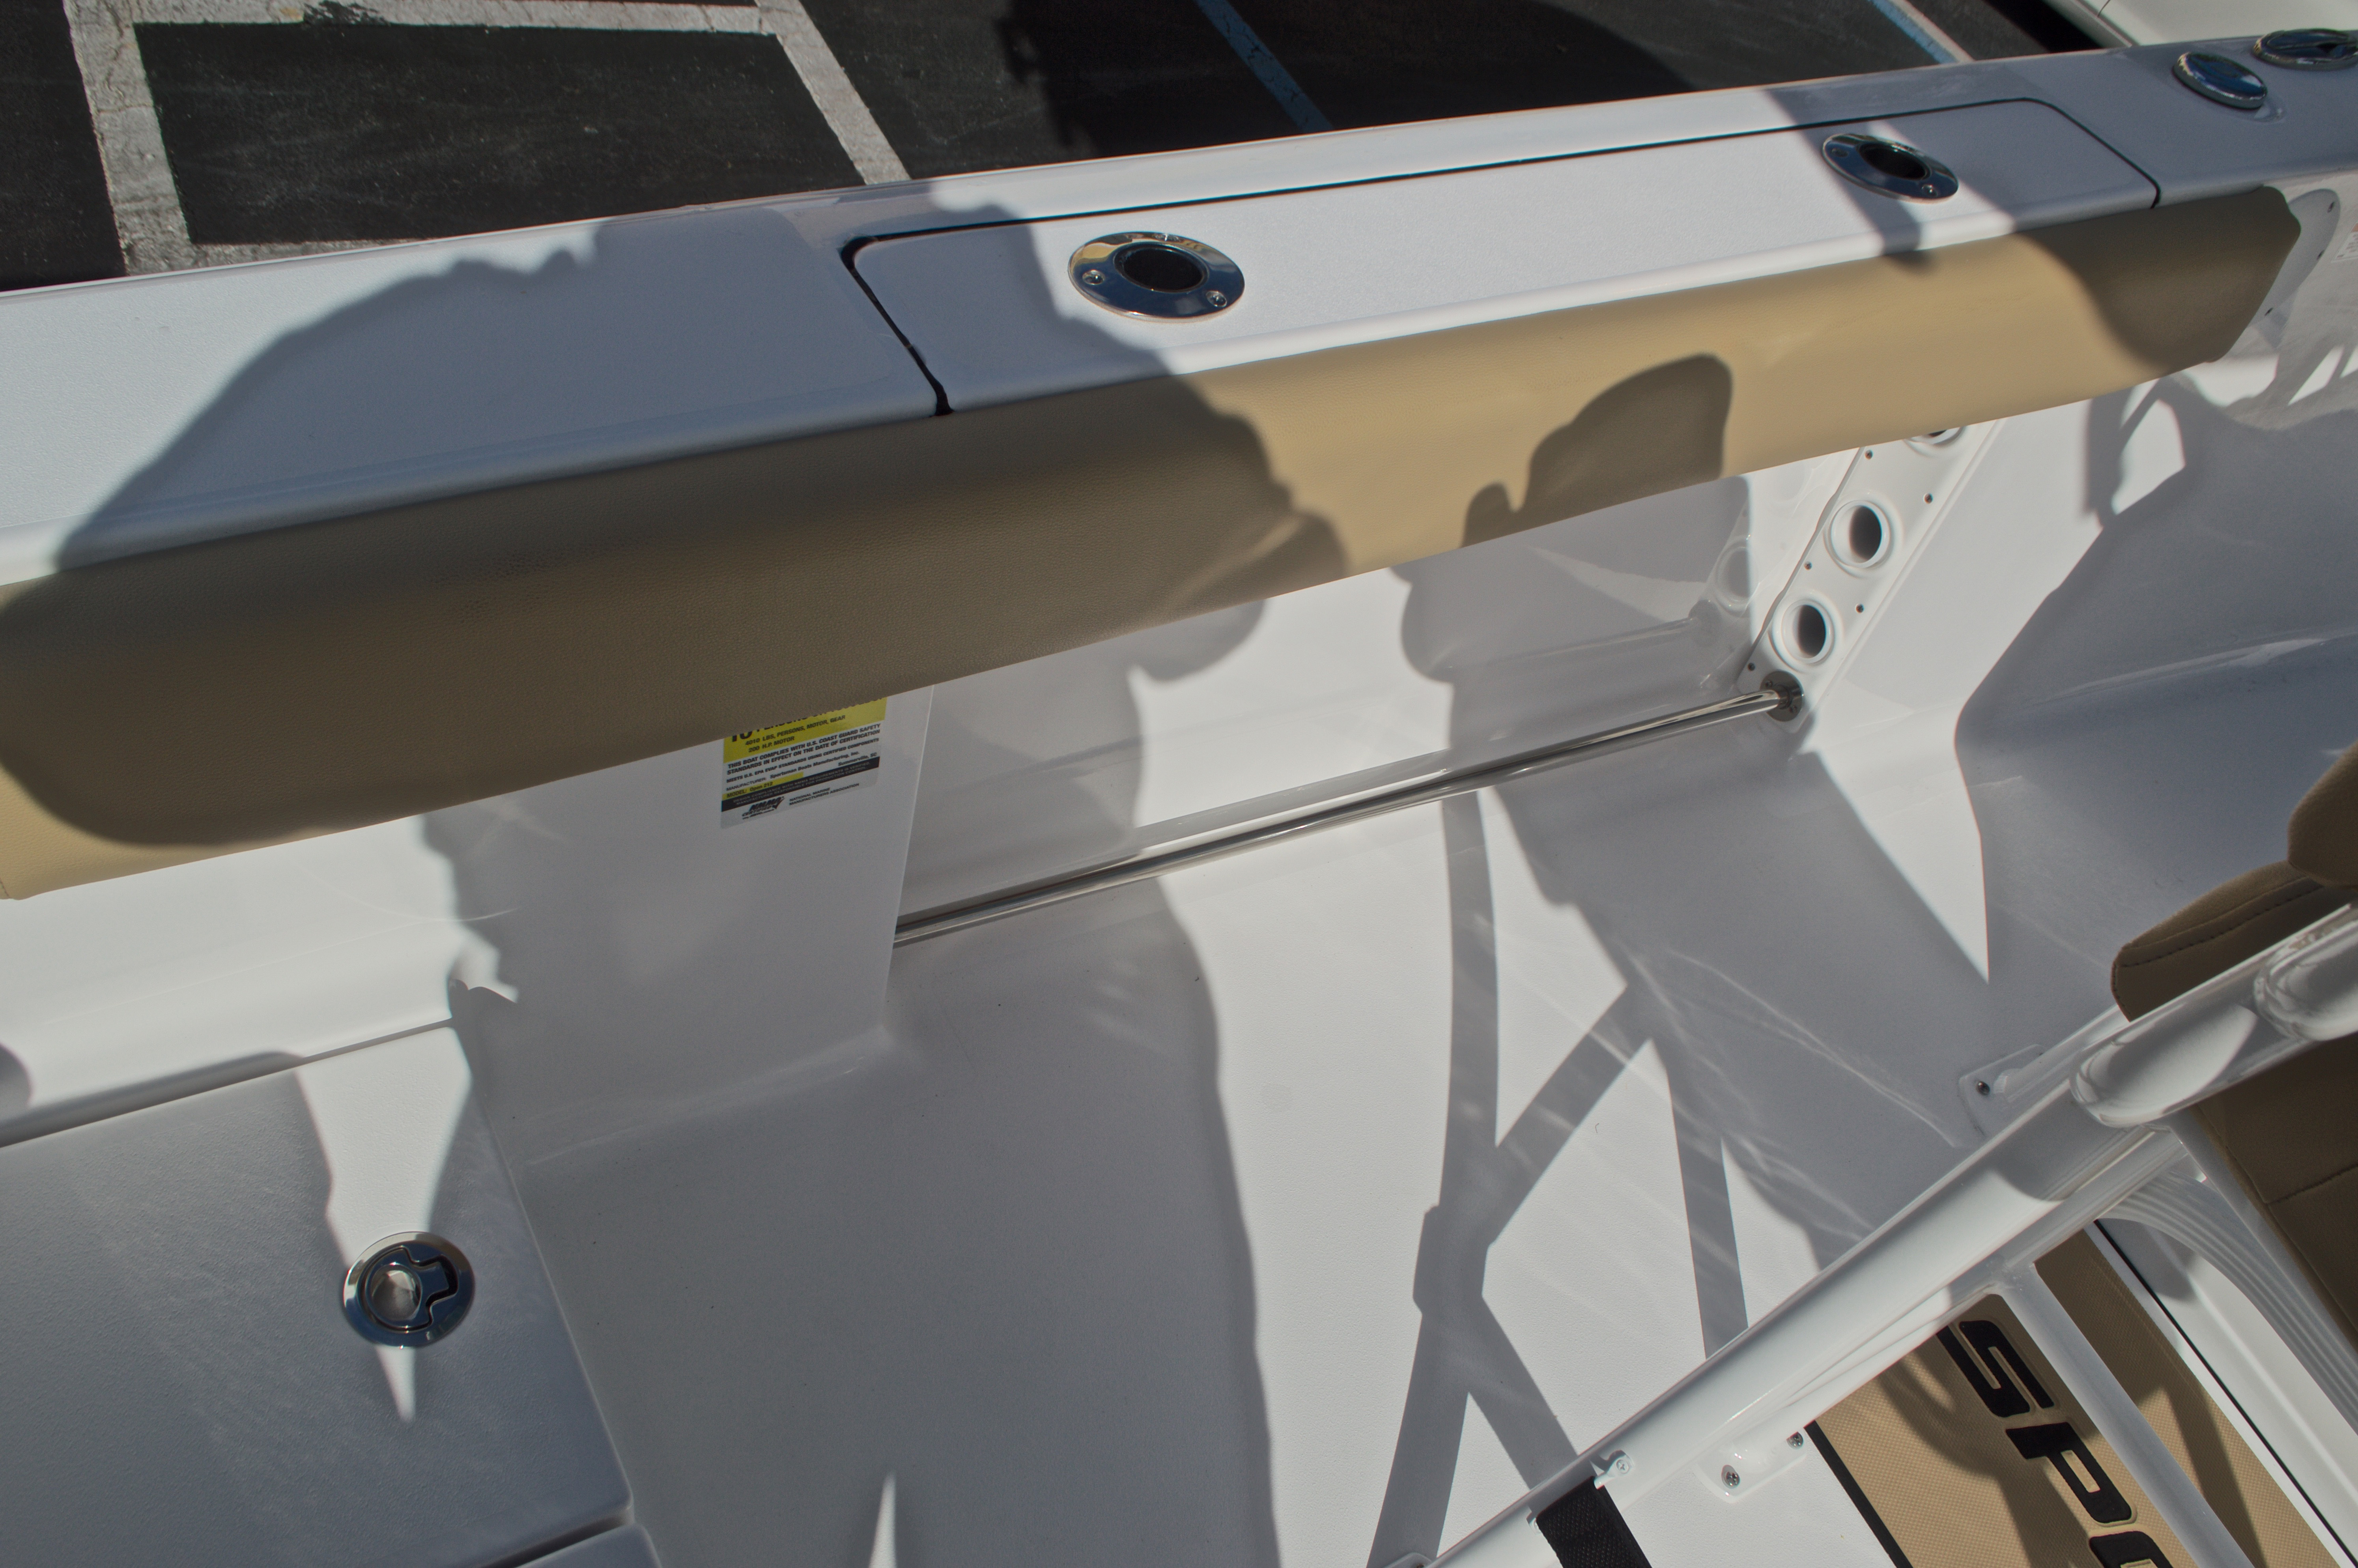 Thumbnail 23 for New 2017 Sportsman Open 212 Center Console boat for sale in West Palm Beach, FL